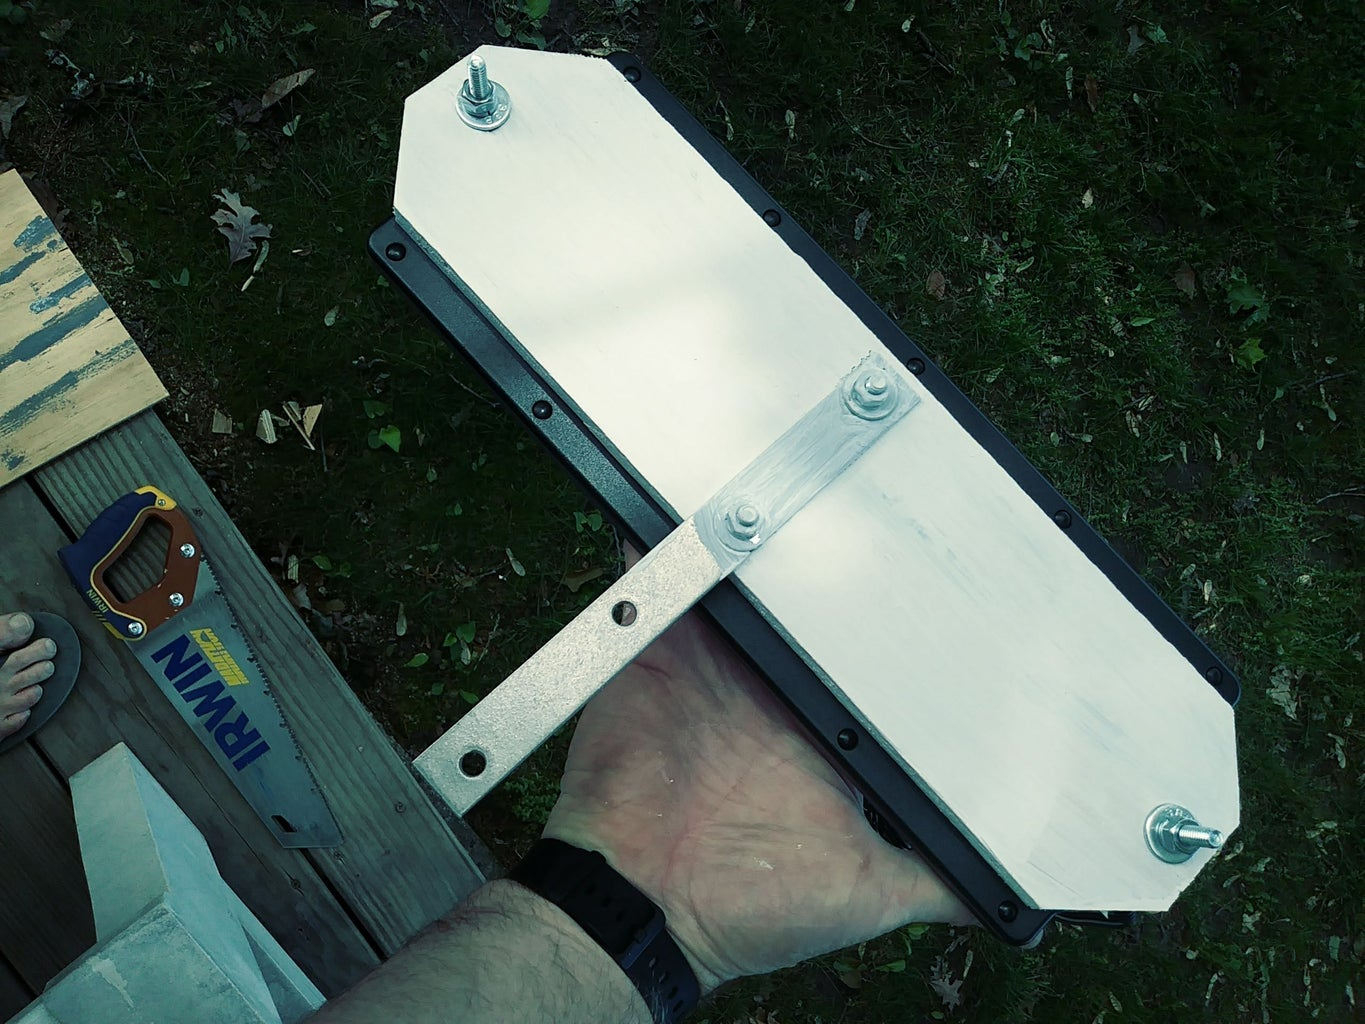 Mount the Solar Panel to the Wooden Base